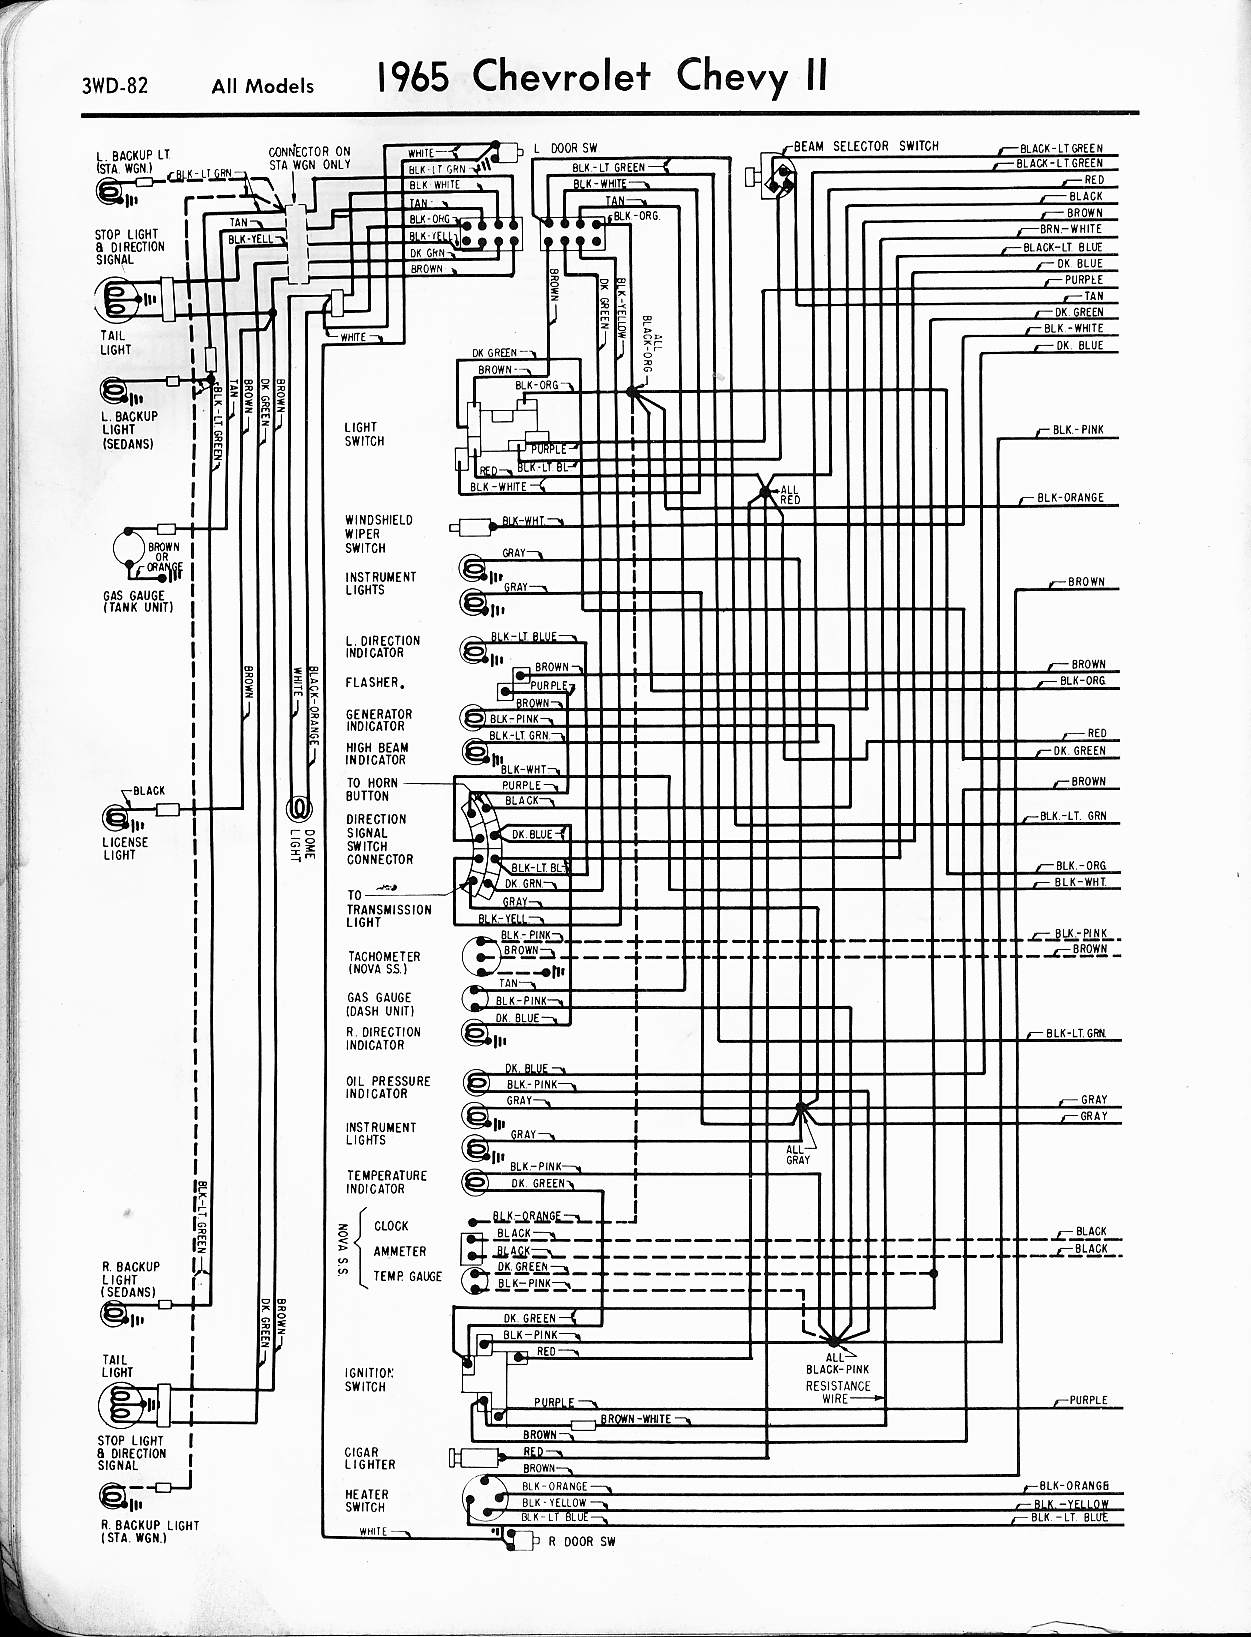 Chevy wiring schematics on chevrolet wiring diagrams chevrolet wiring diagrams instruction 1965 Chevy Truck Wiring Diagram Chevy Starter Wiring Diagram